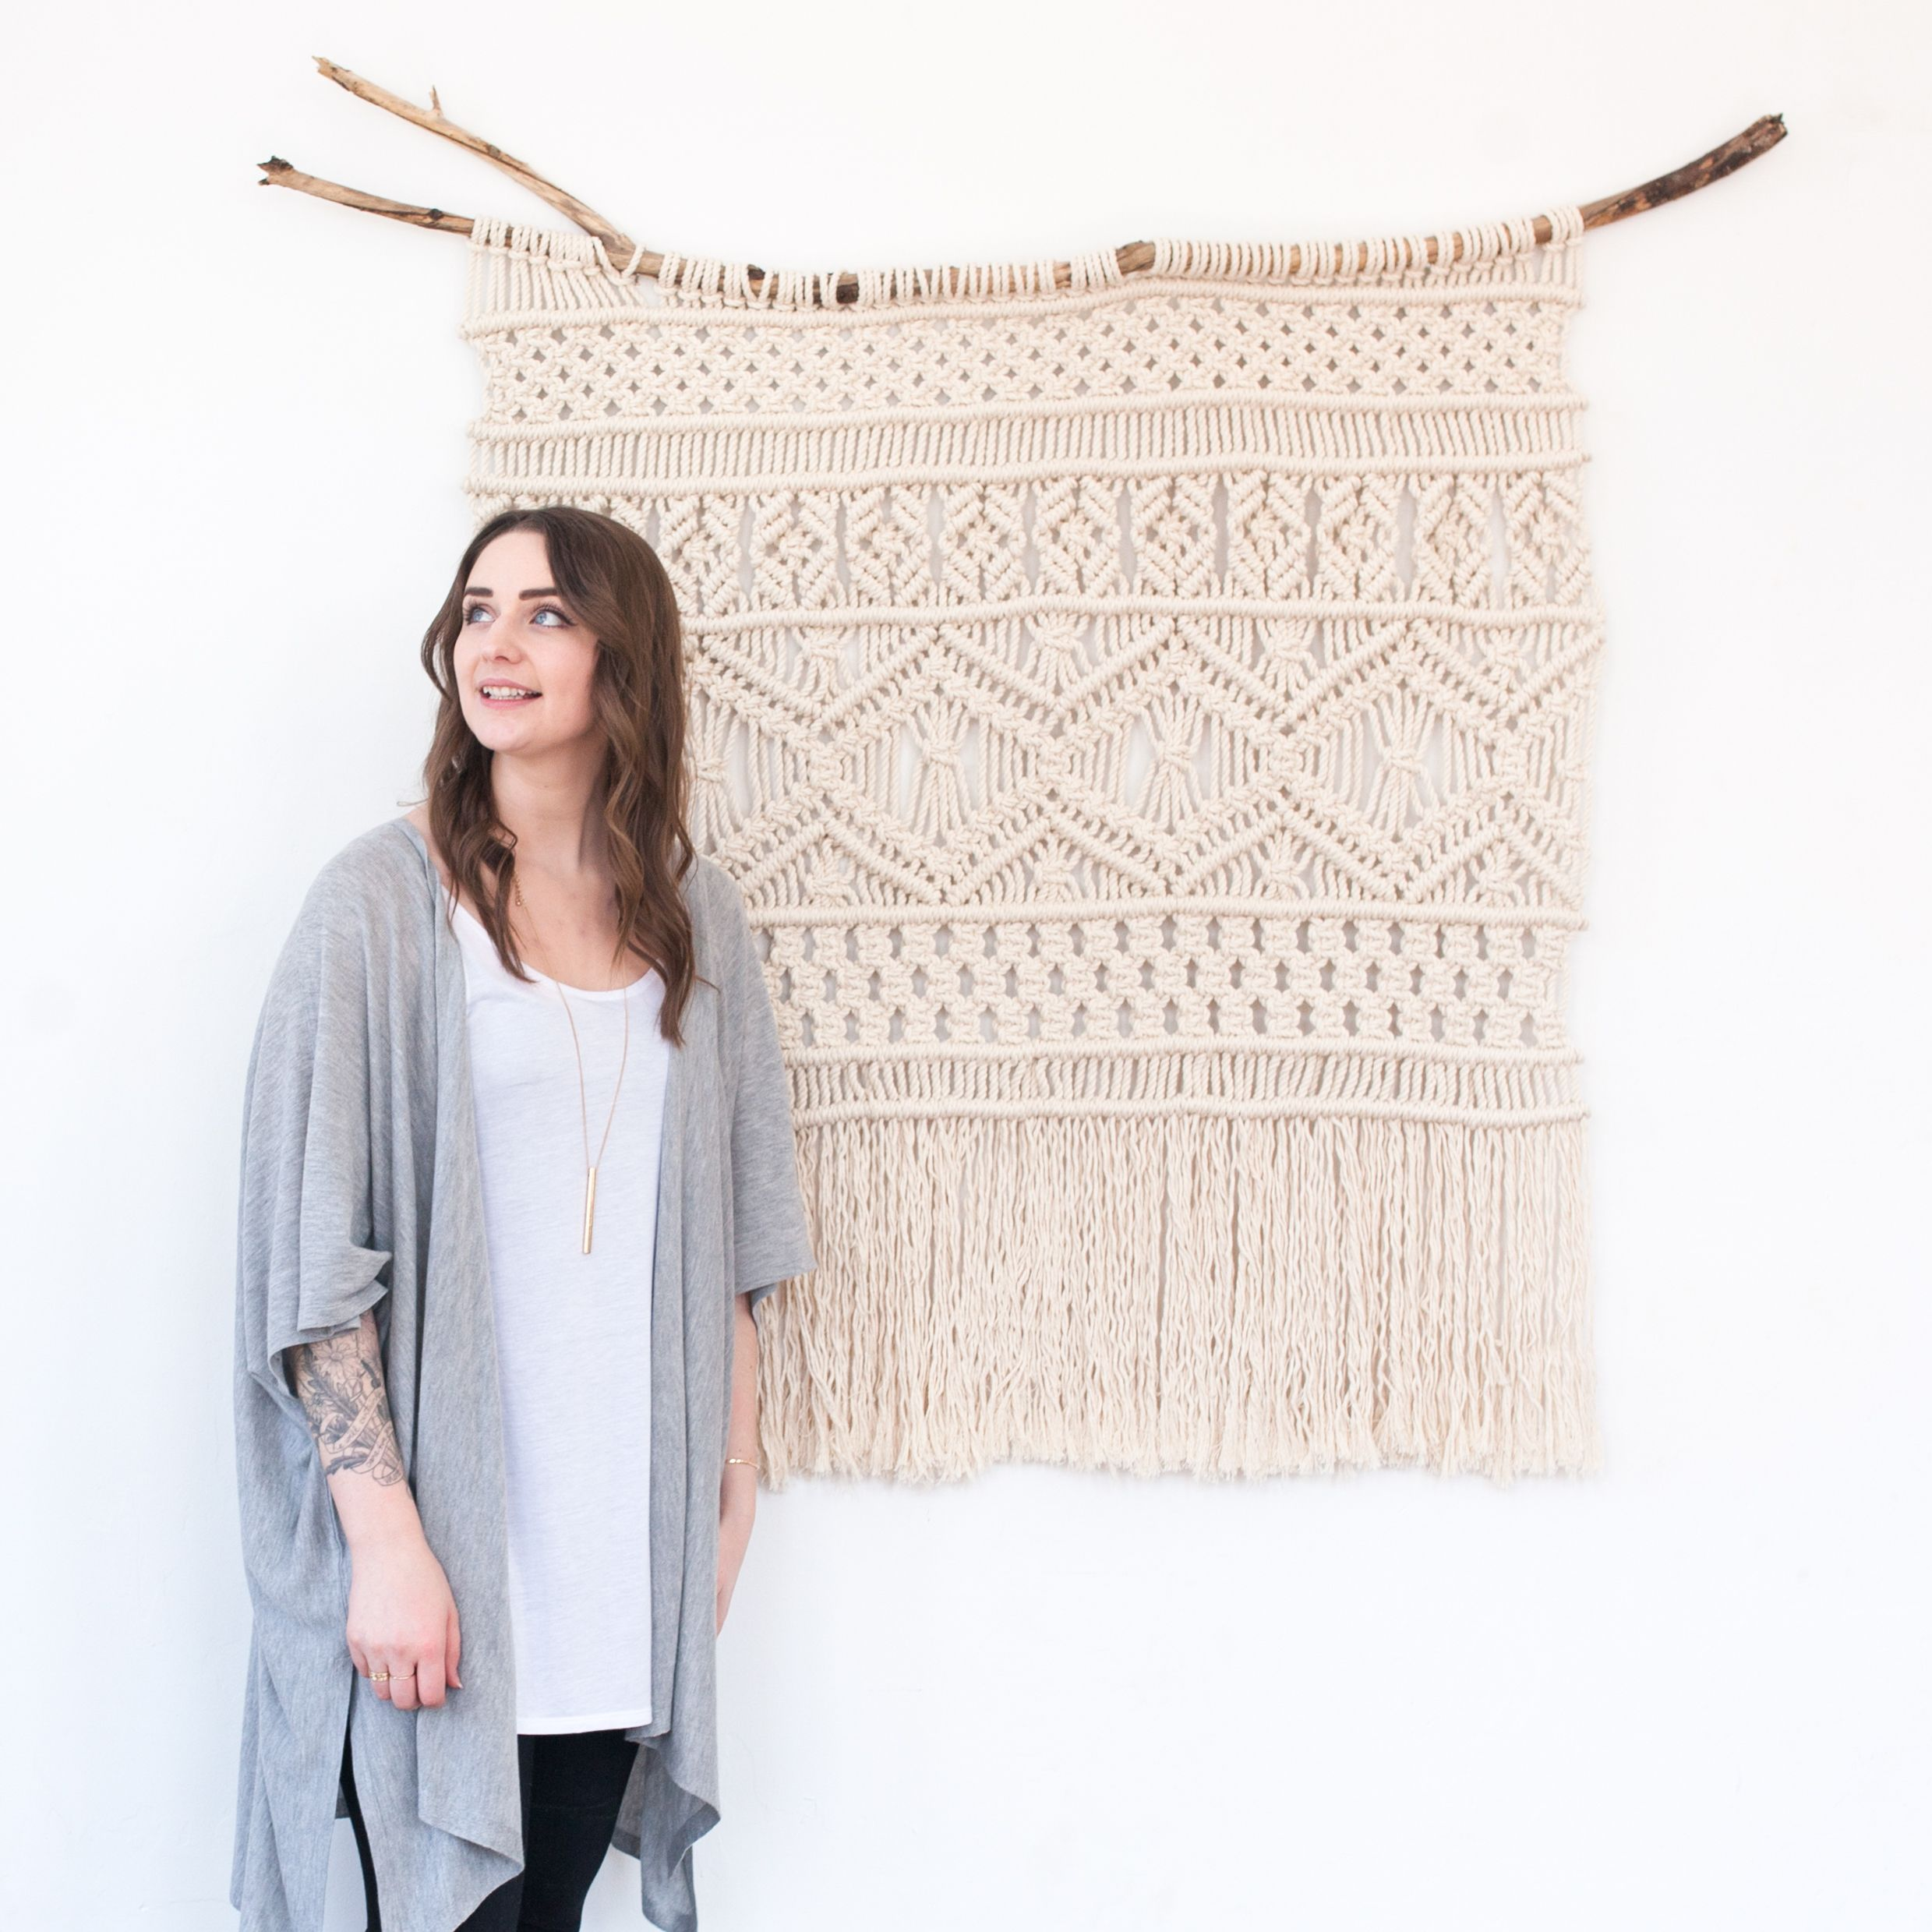 Your Fave Macrame Project: Large Macrame Wall Hanging